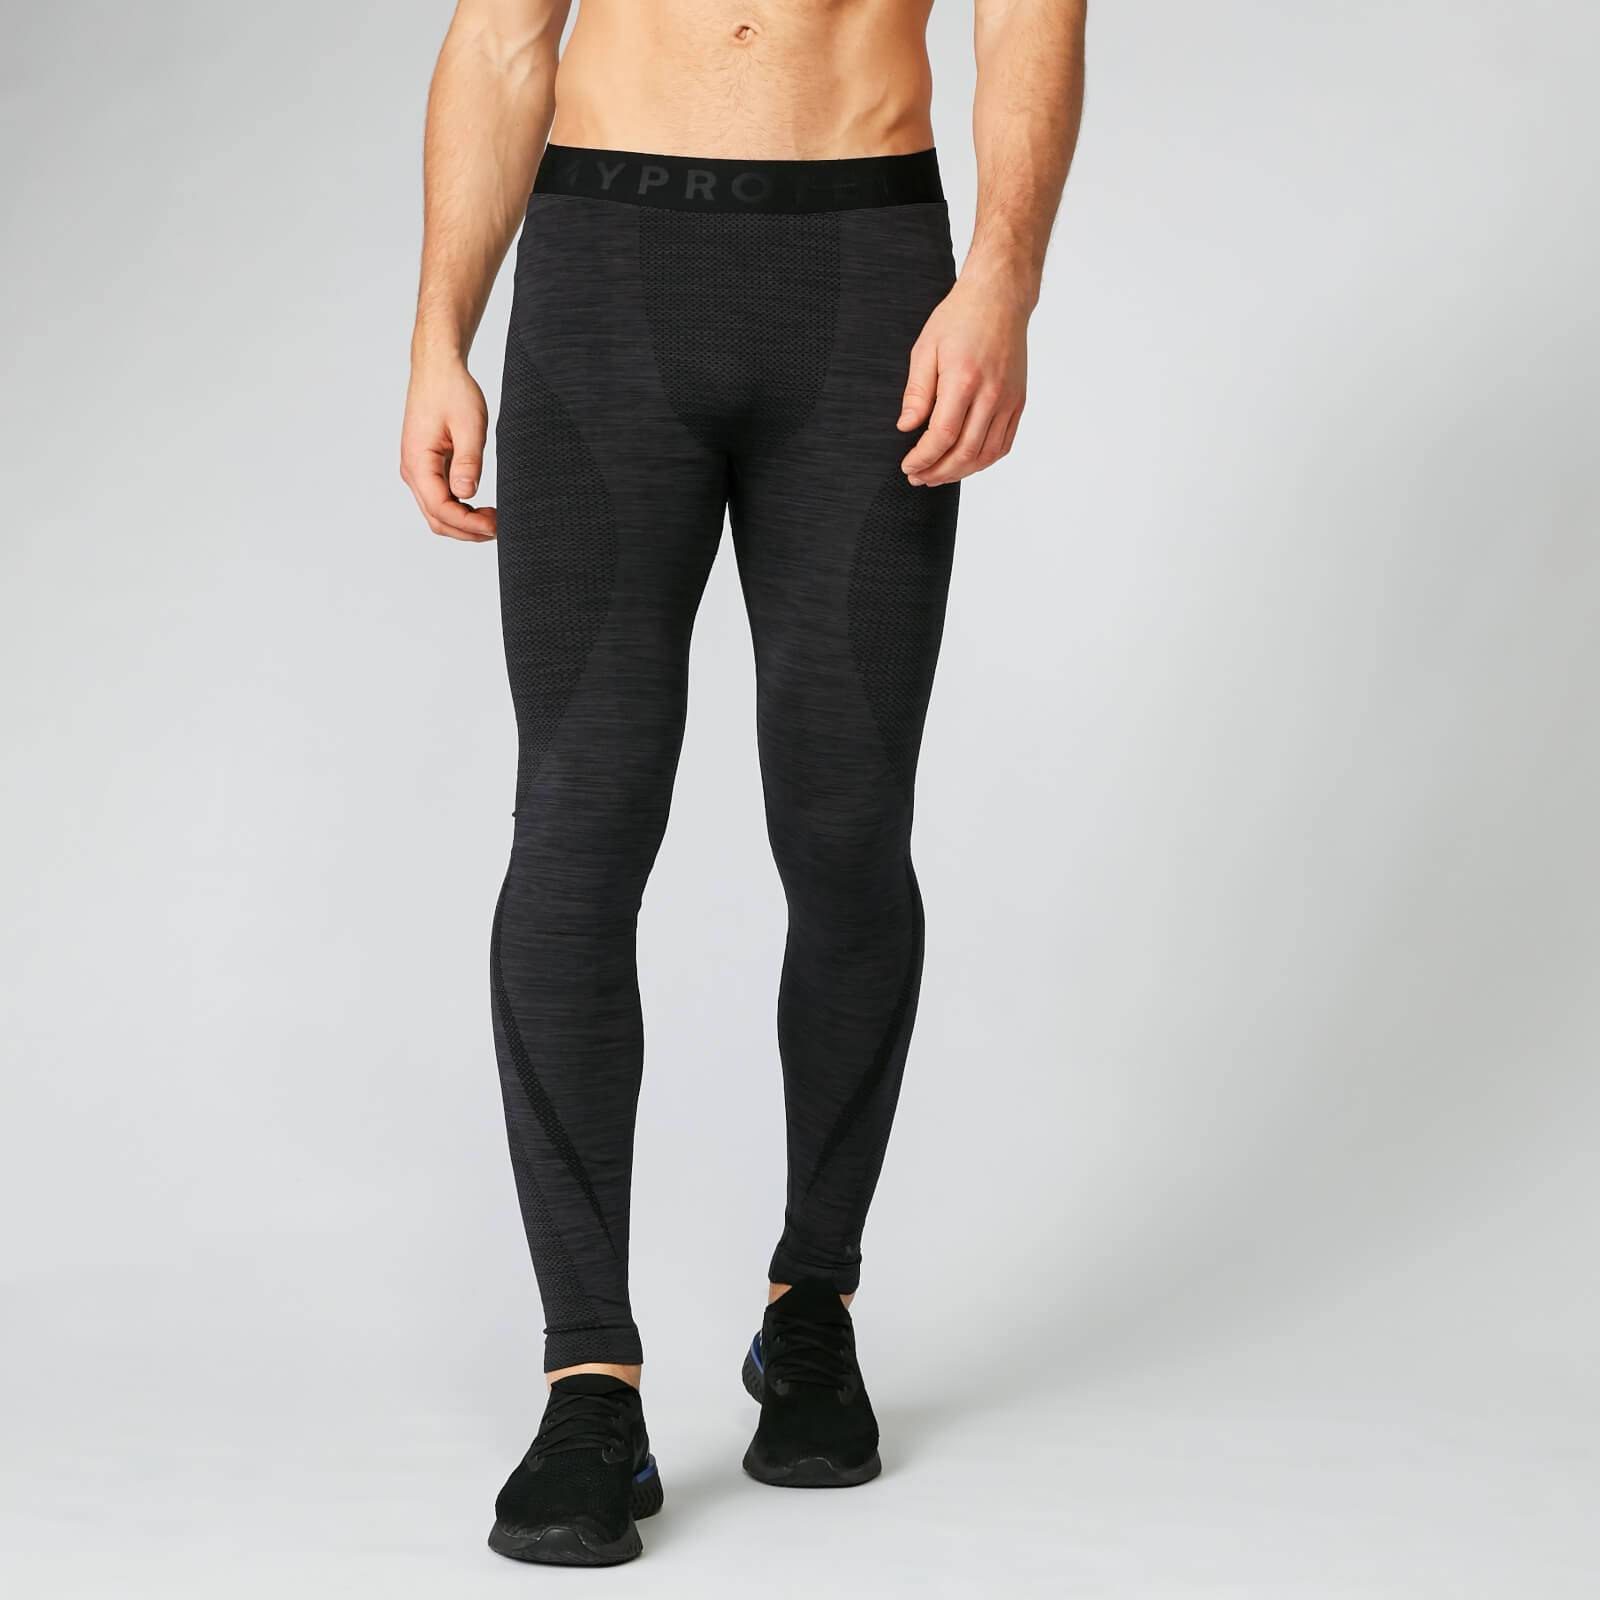 Myprotein Sculpt Seamless Tights - Slate - S